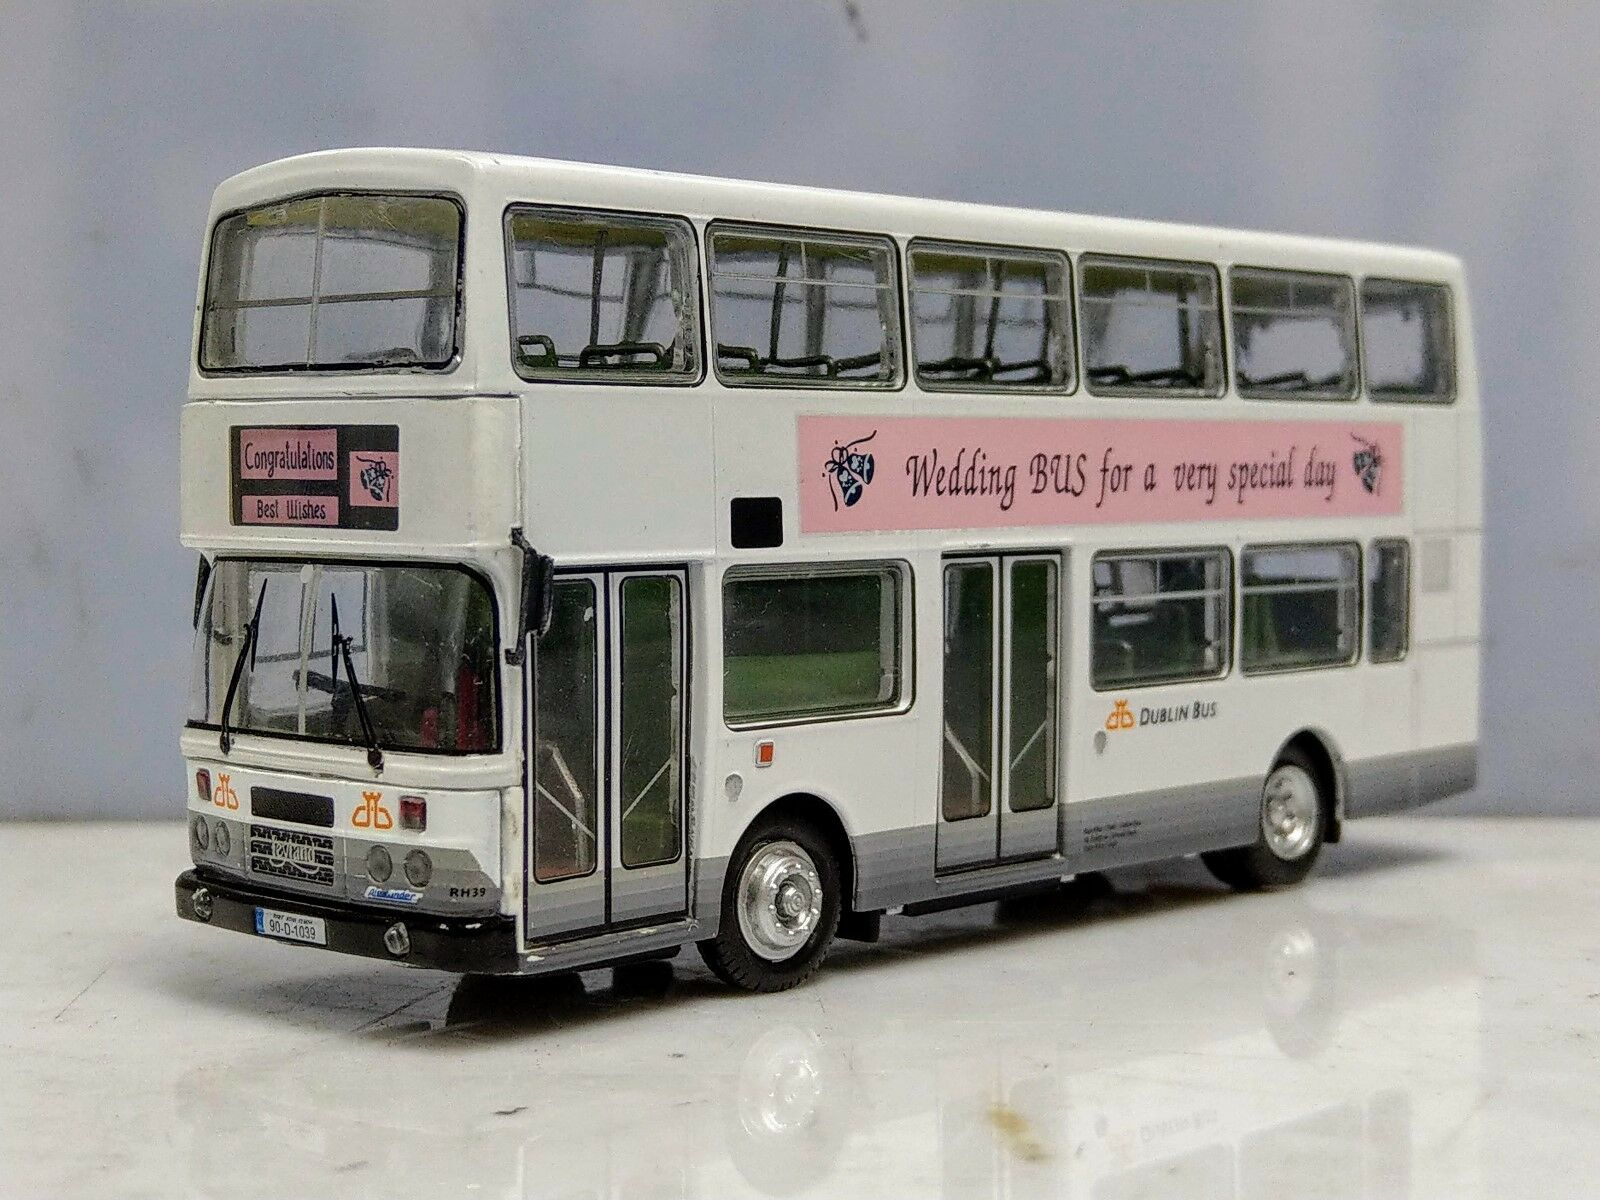 Britbus WD001 1 76 Leyland Olympian Dublin Bus Wedding bus livery bus model